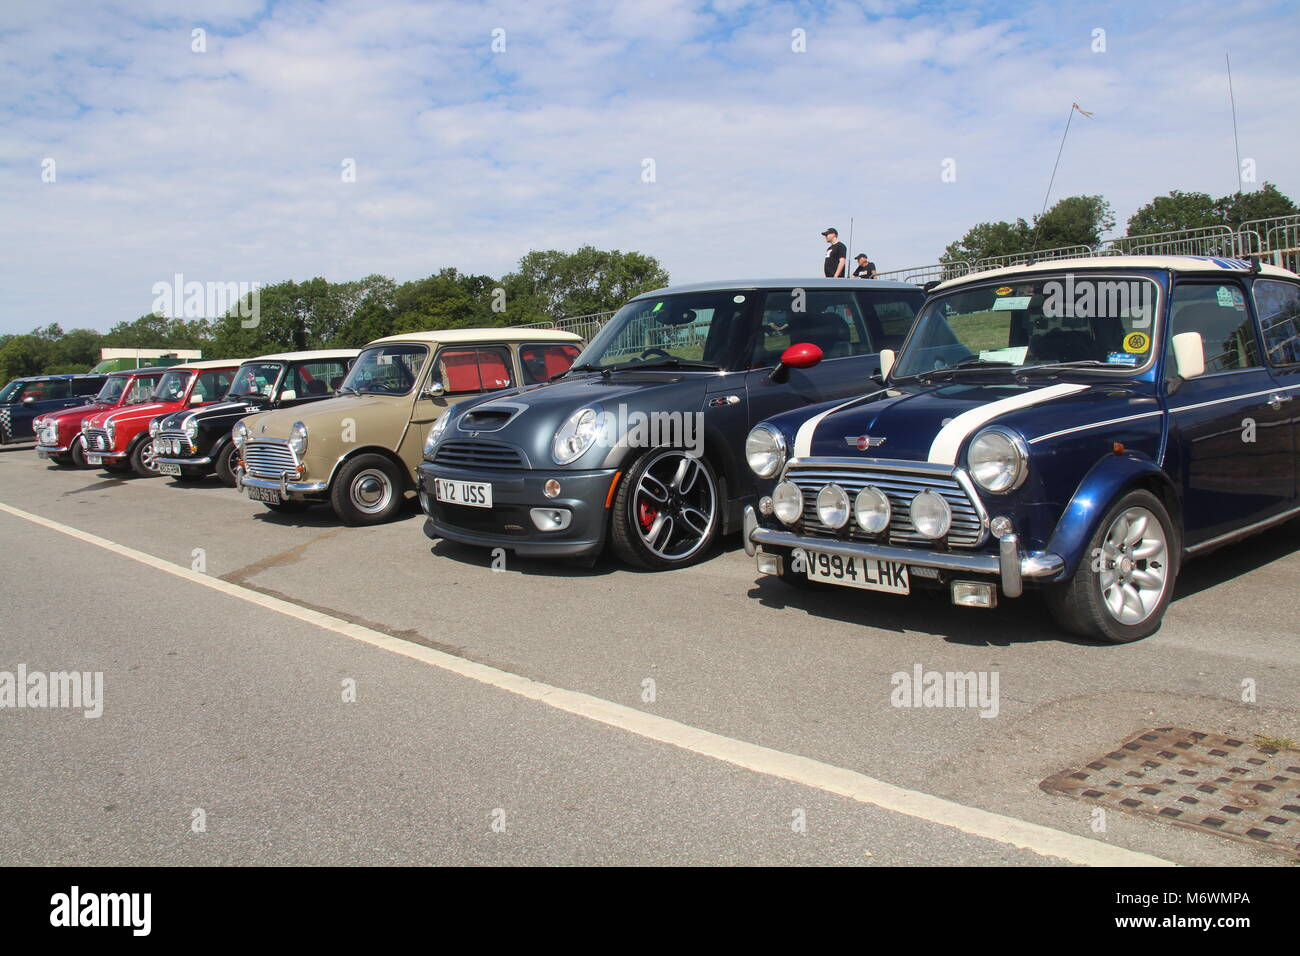 Old New Cars Stock Photos & Old New Cars Stock Images - Alamy